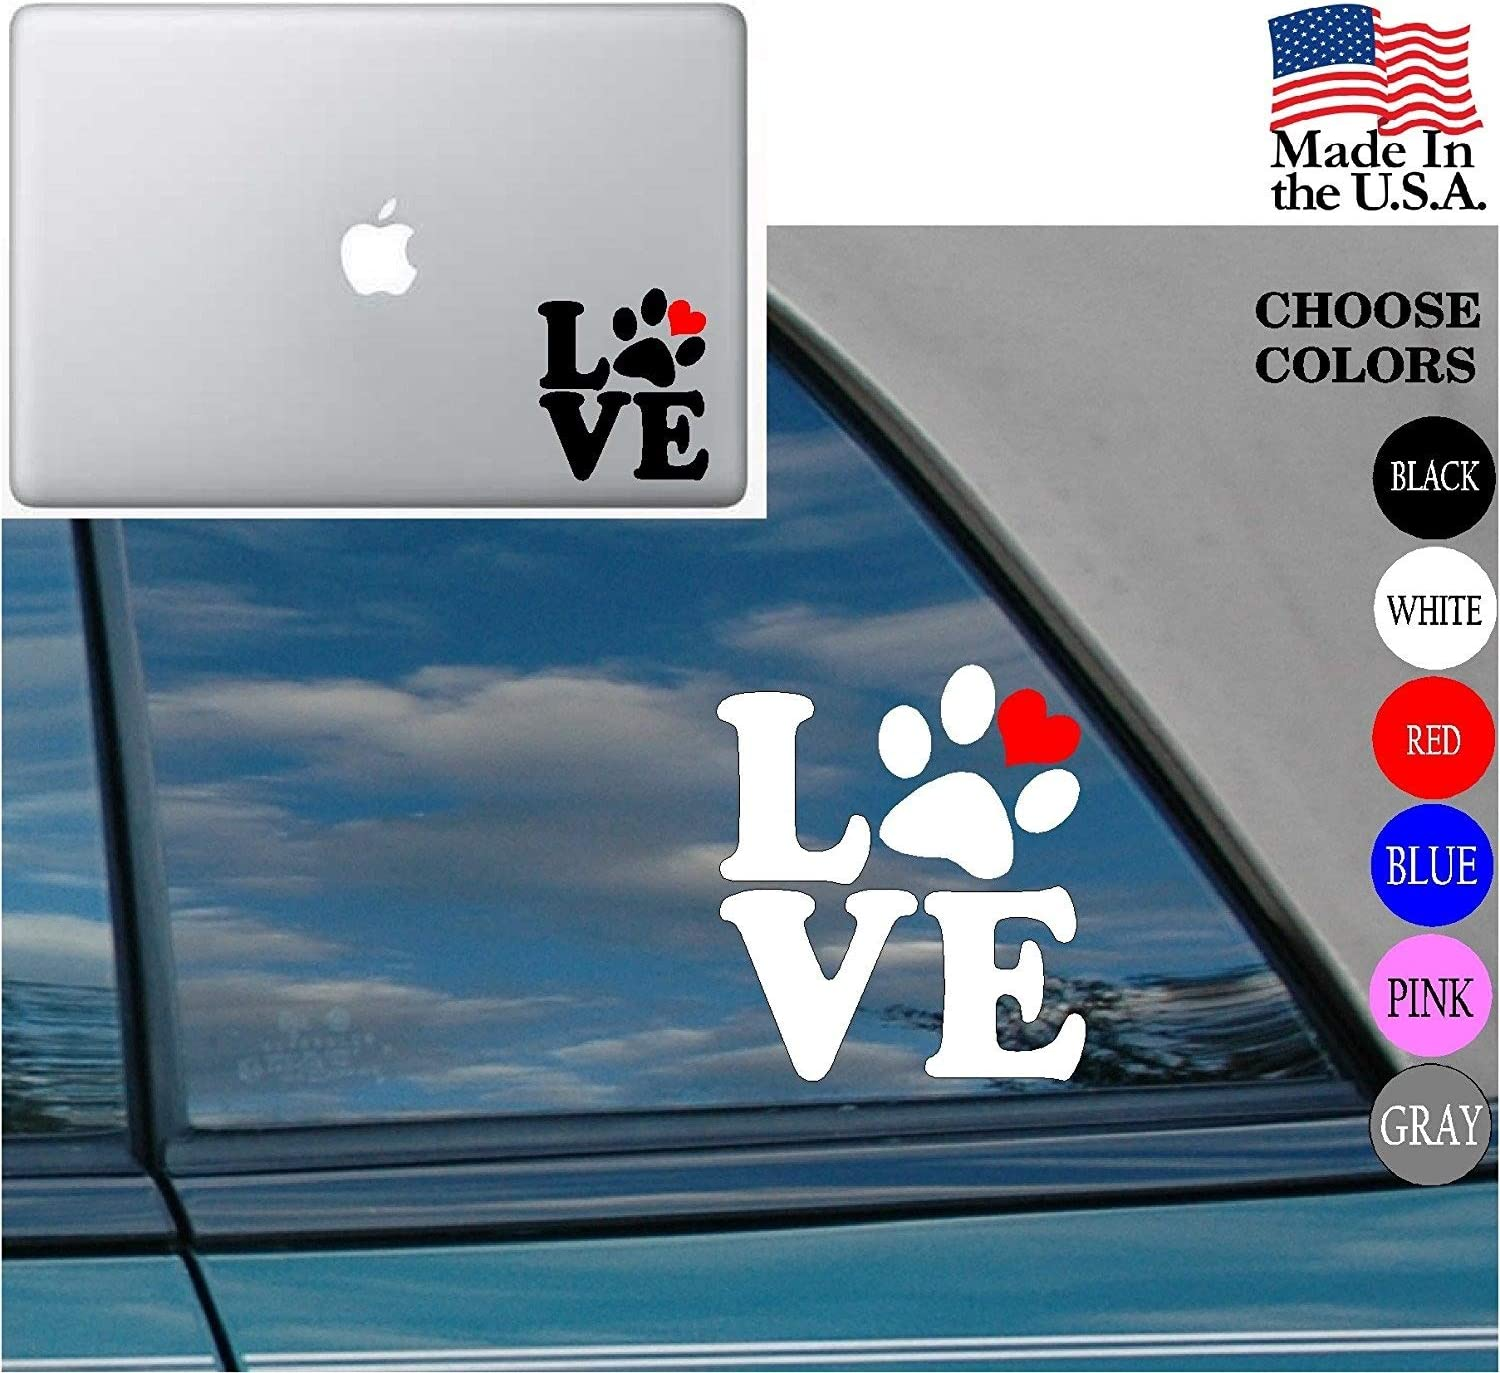 Cat Dog Horse, Black Animal lover Horse Dog Cat Love Pet Vinyl Decal Sticker for Car Window Laptop 2